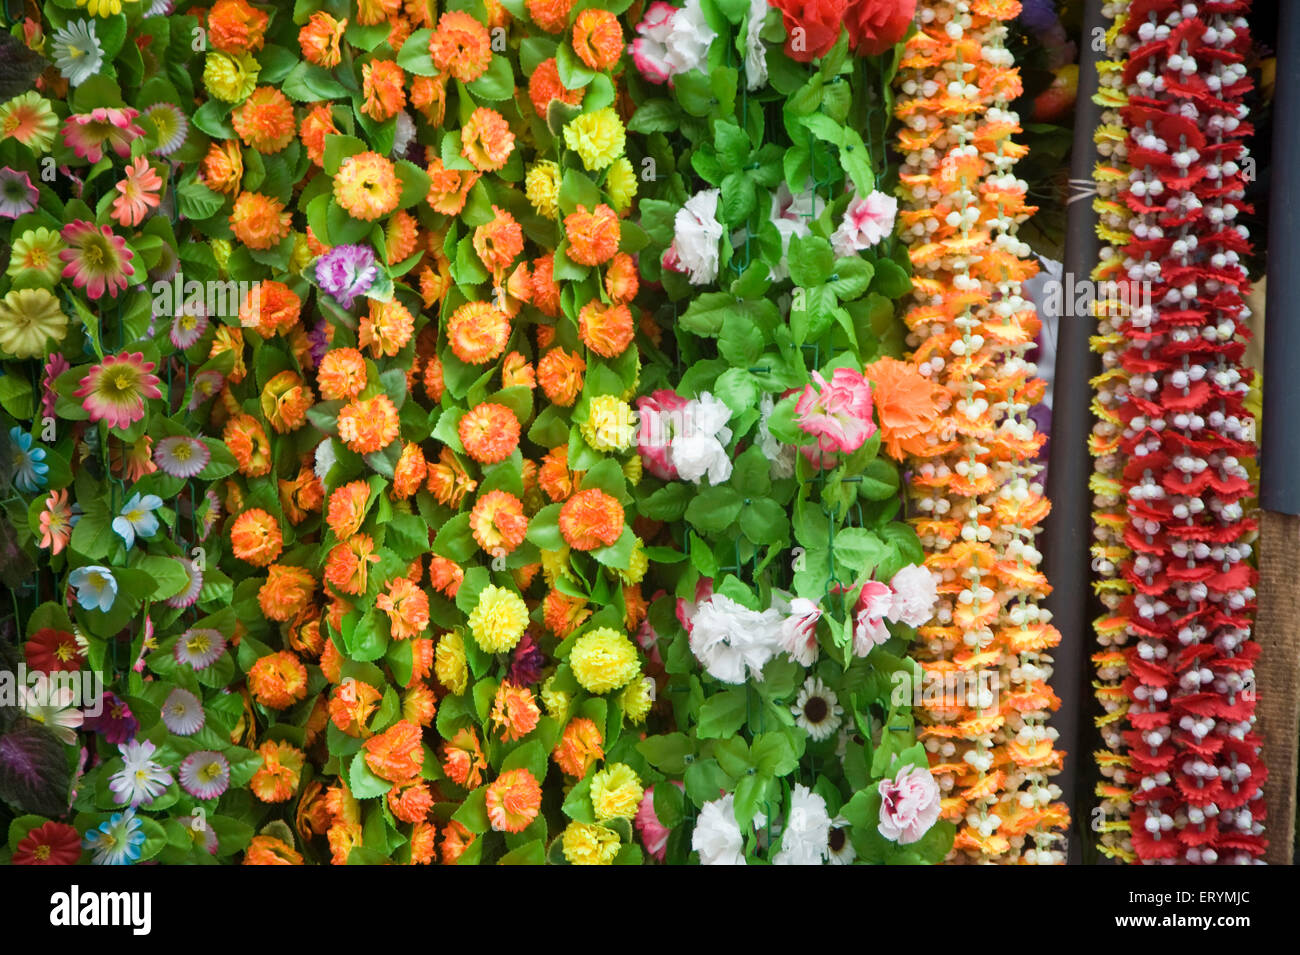 India Artificial Flowers Stock Photos India Artificial Flowers